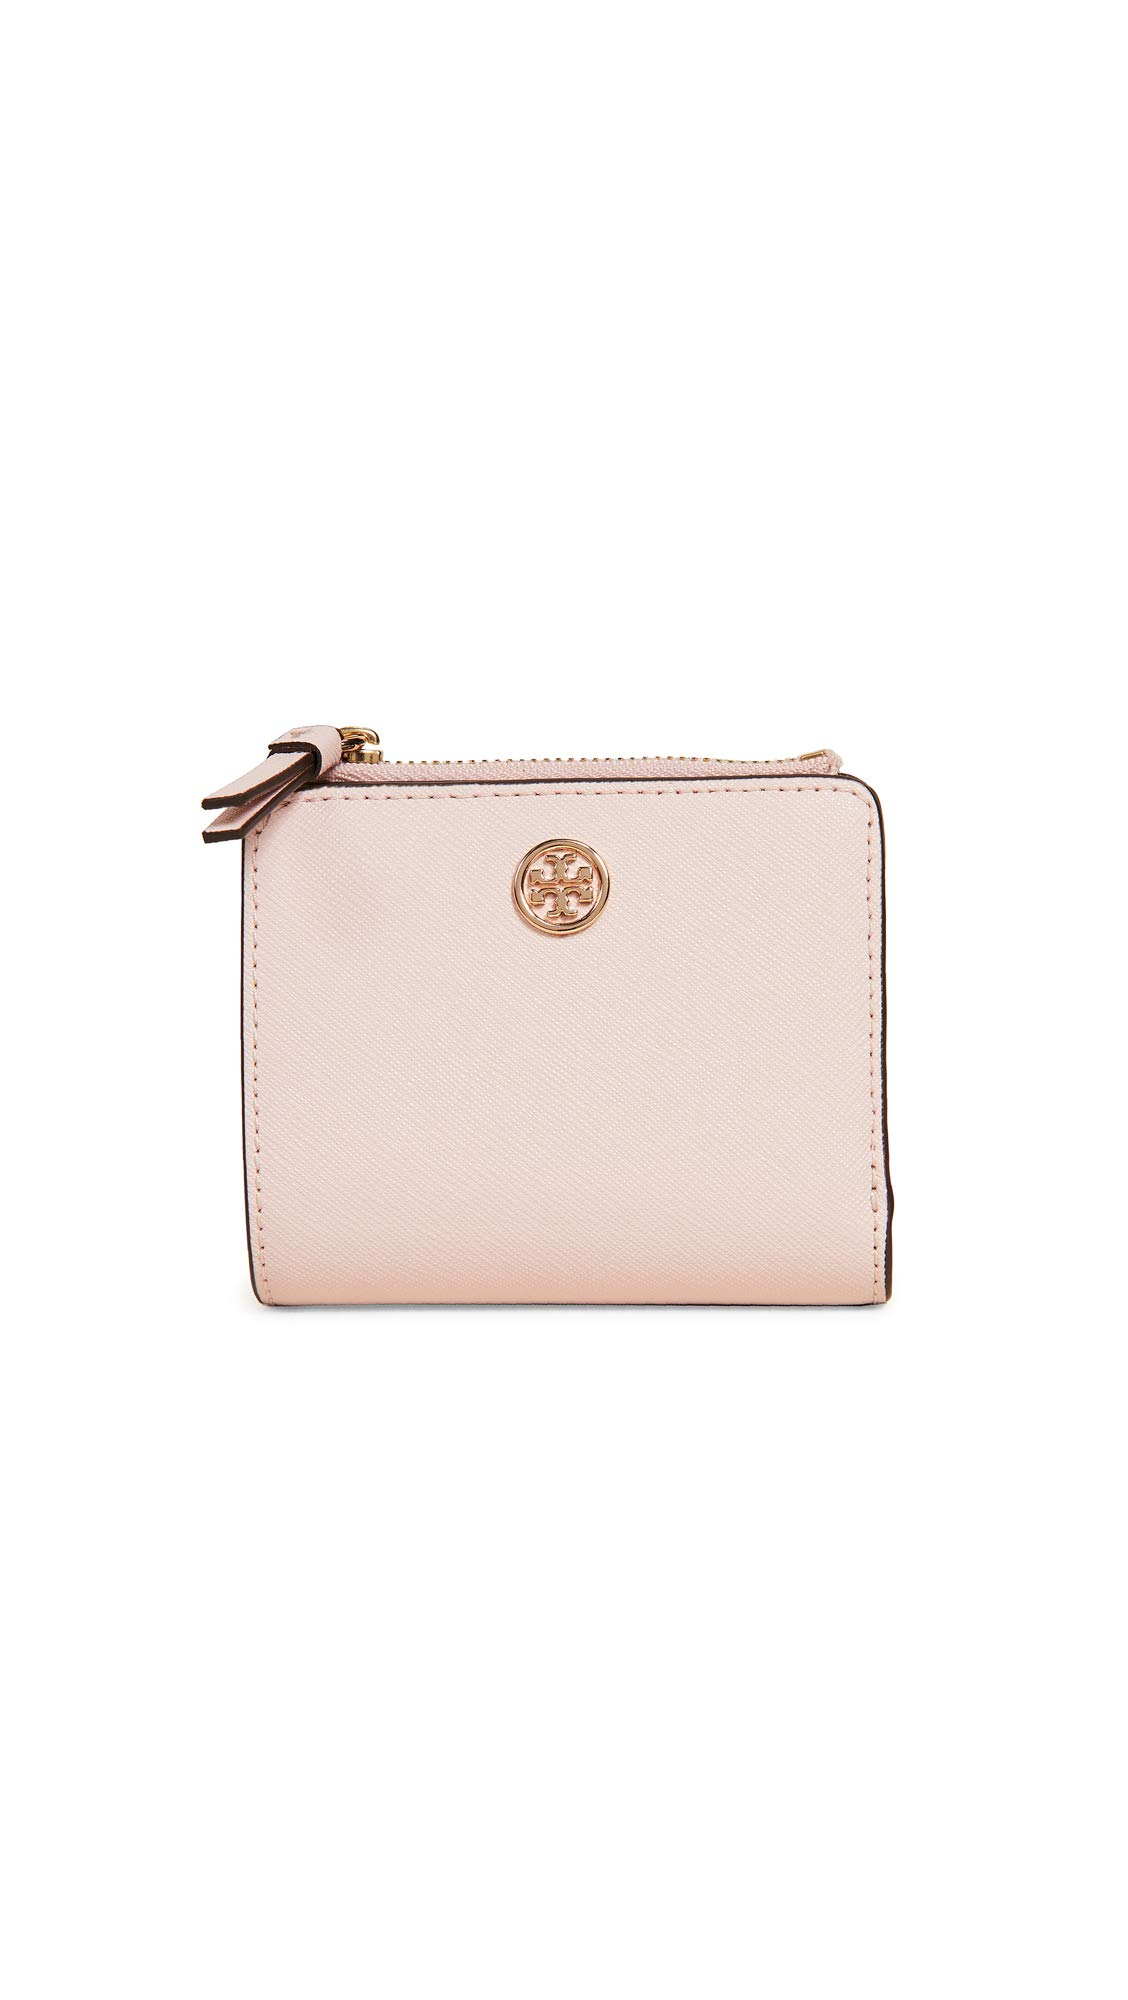 Tory Burch Women's Robinson Mini Wallet, Shell Pink, One Size